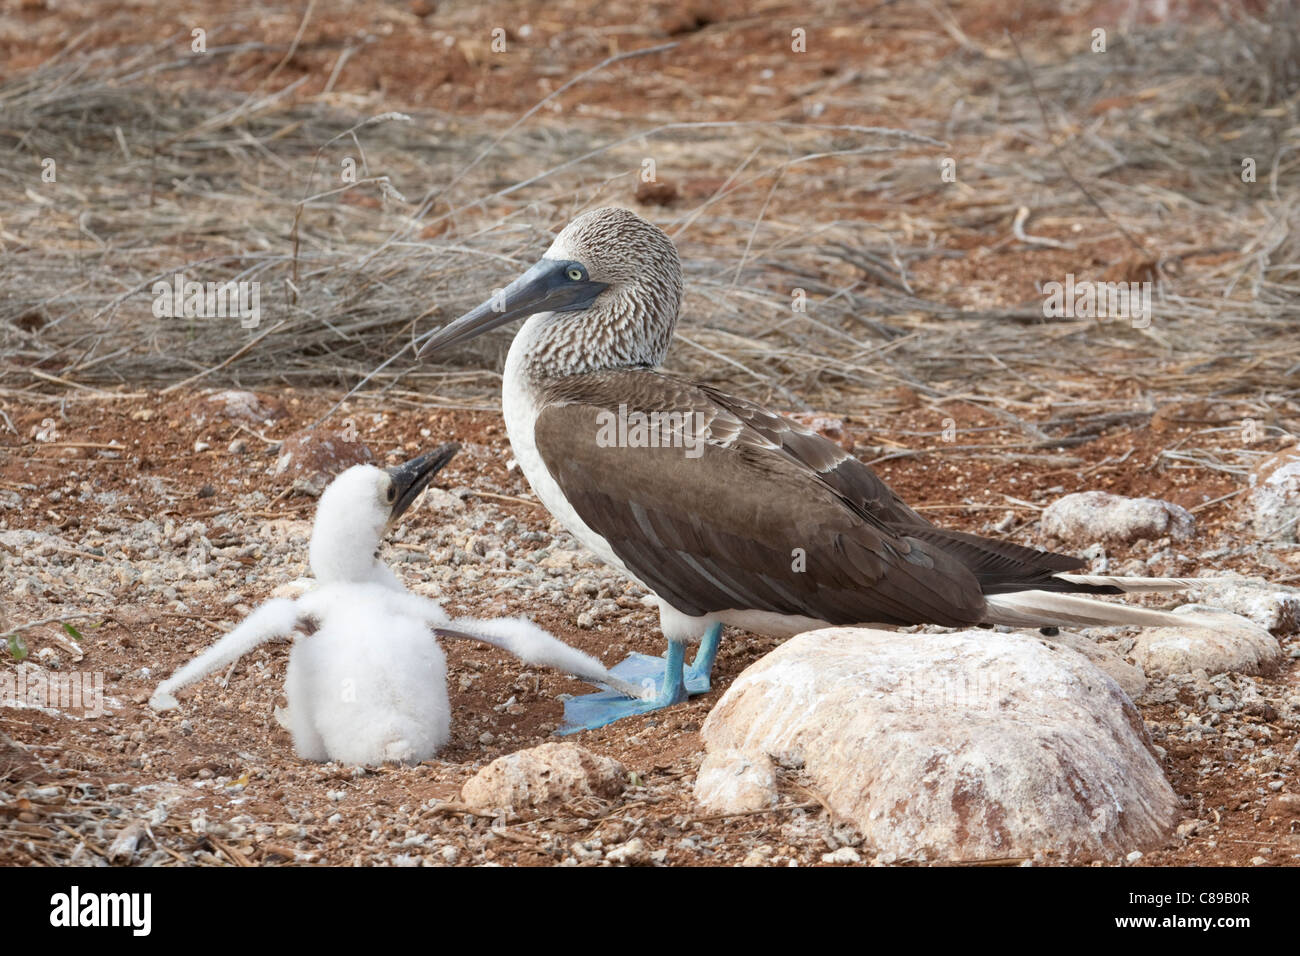 Blue-footed Booby (Sula nebouxii) chick begging to be fed - Stock Image